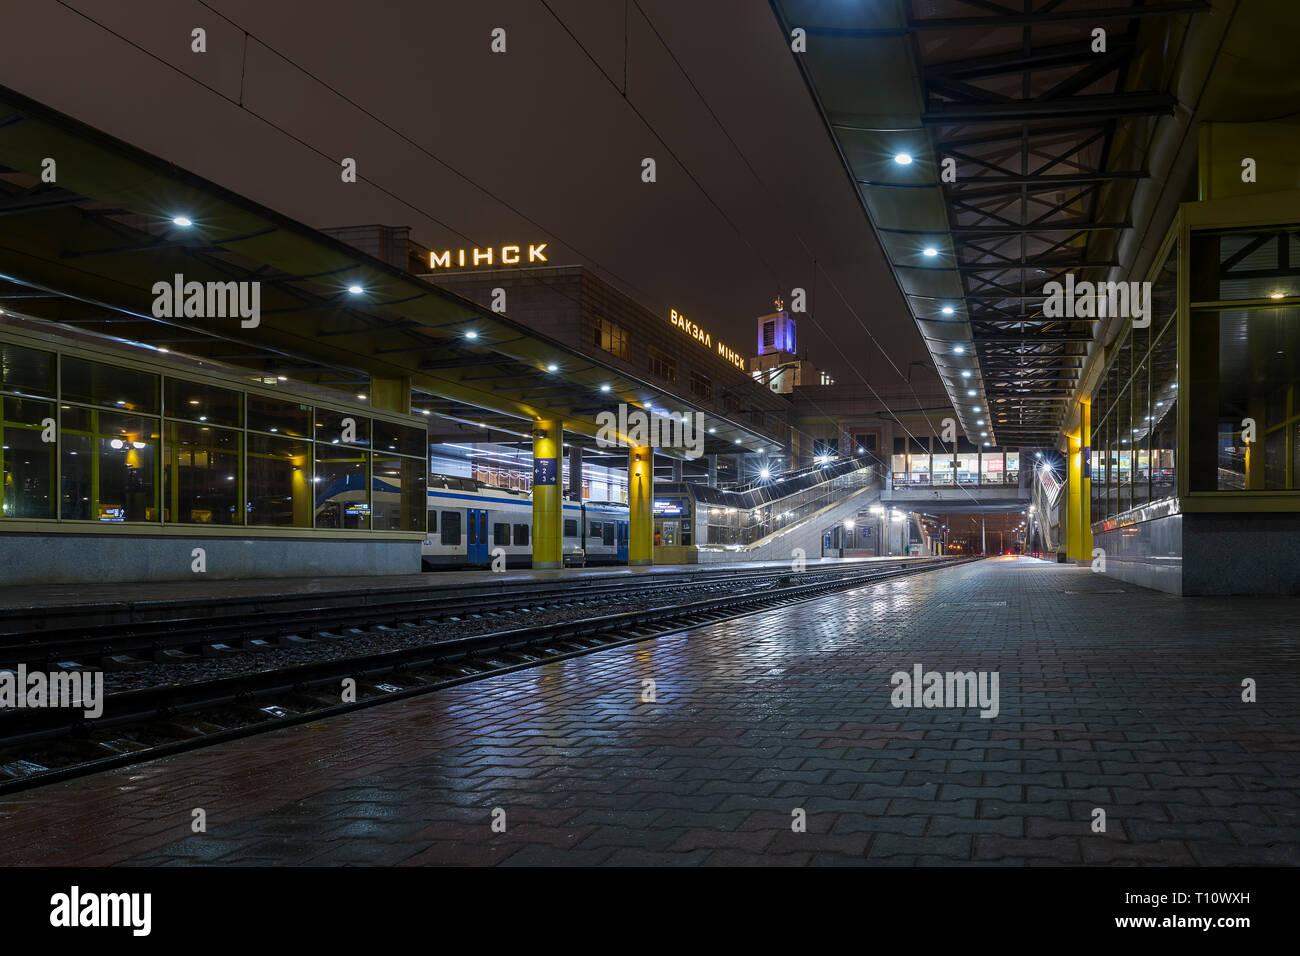 Minsk central railway station at night - Stock Image